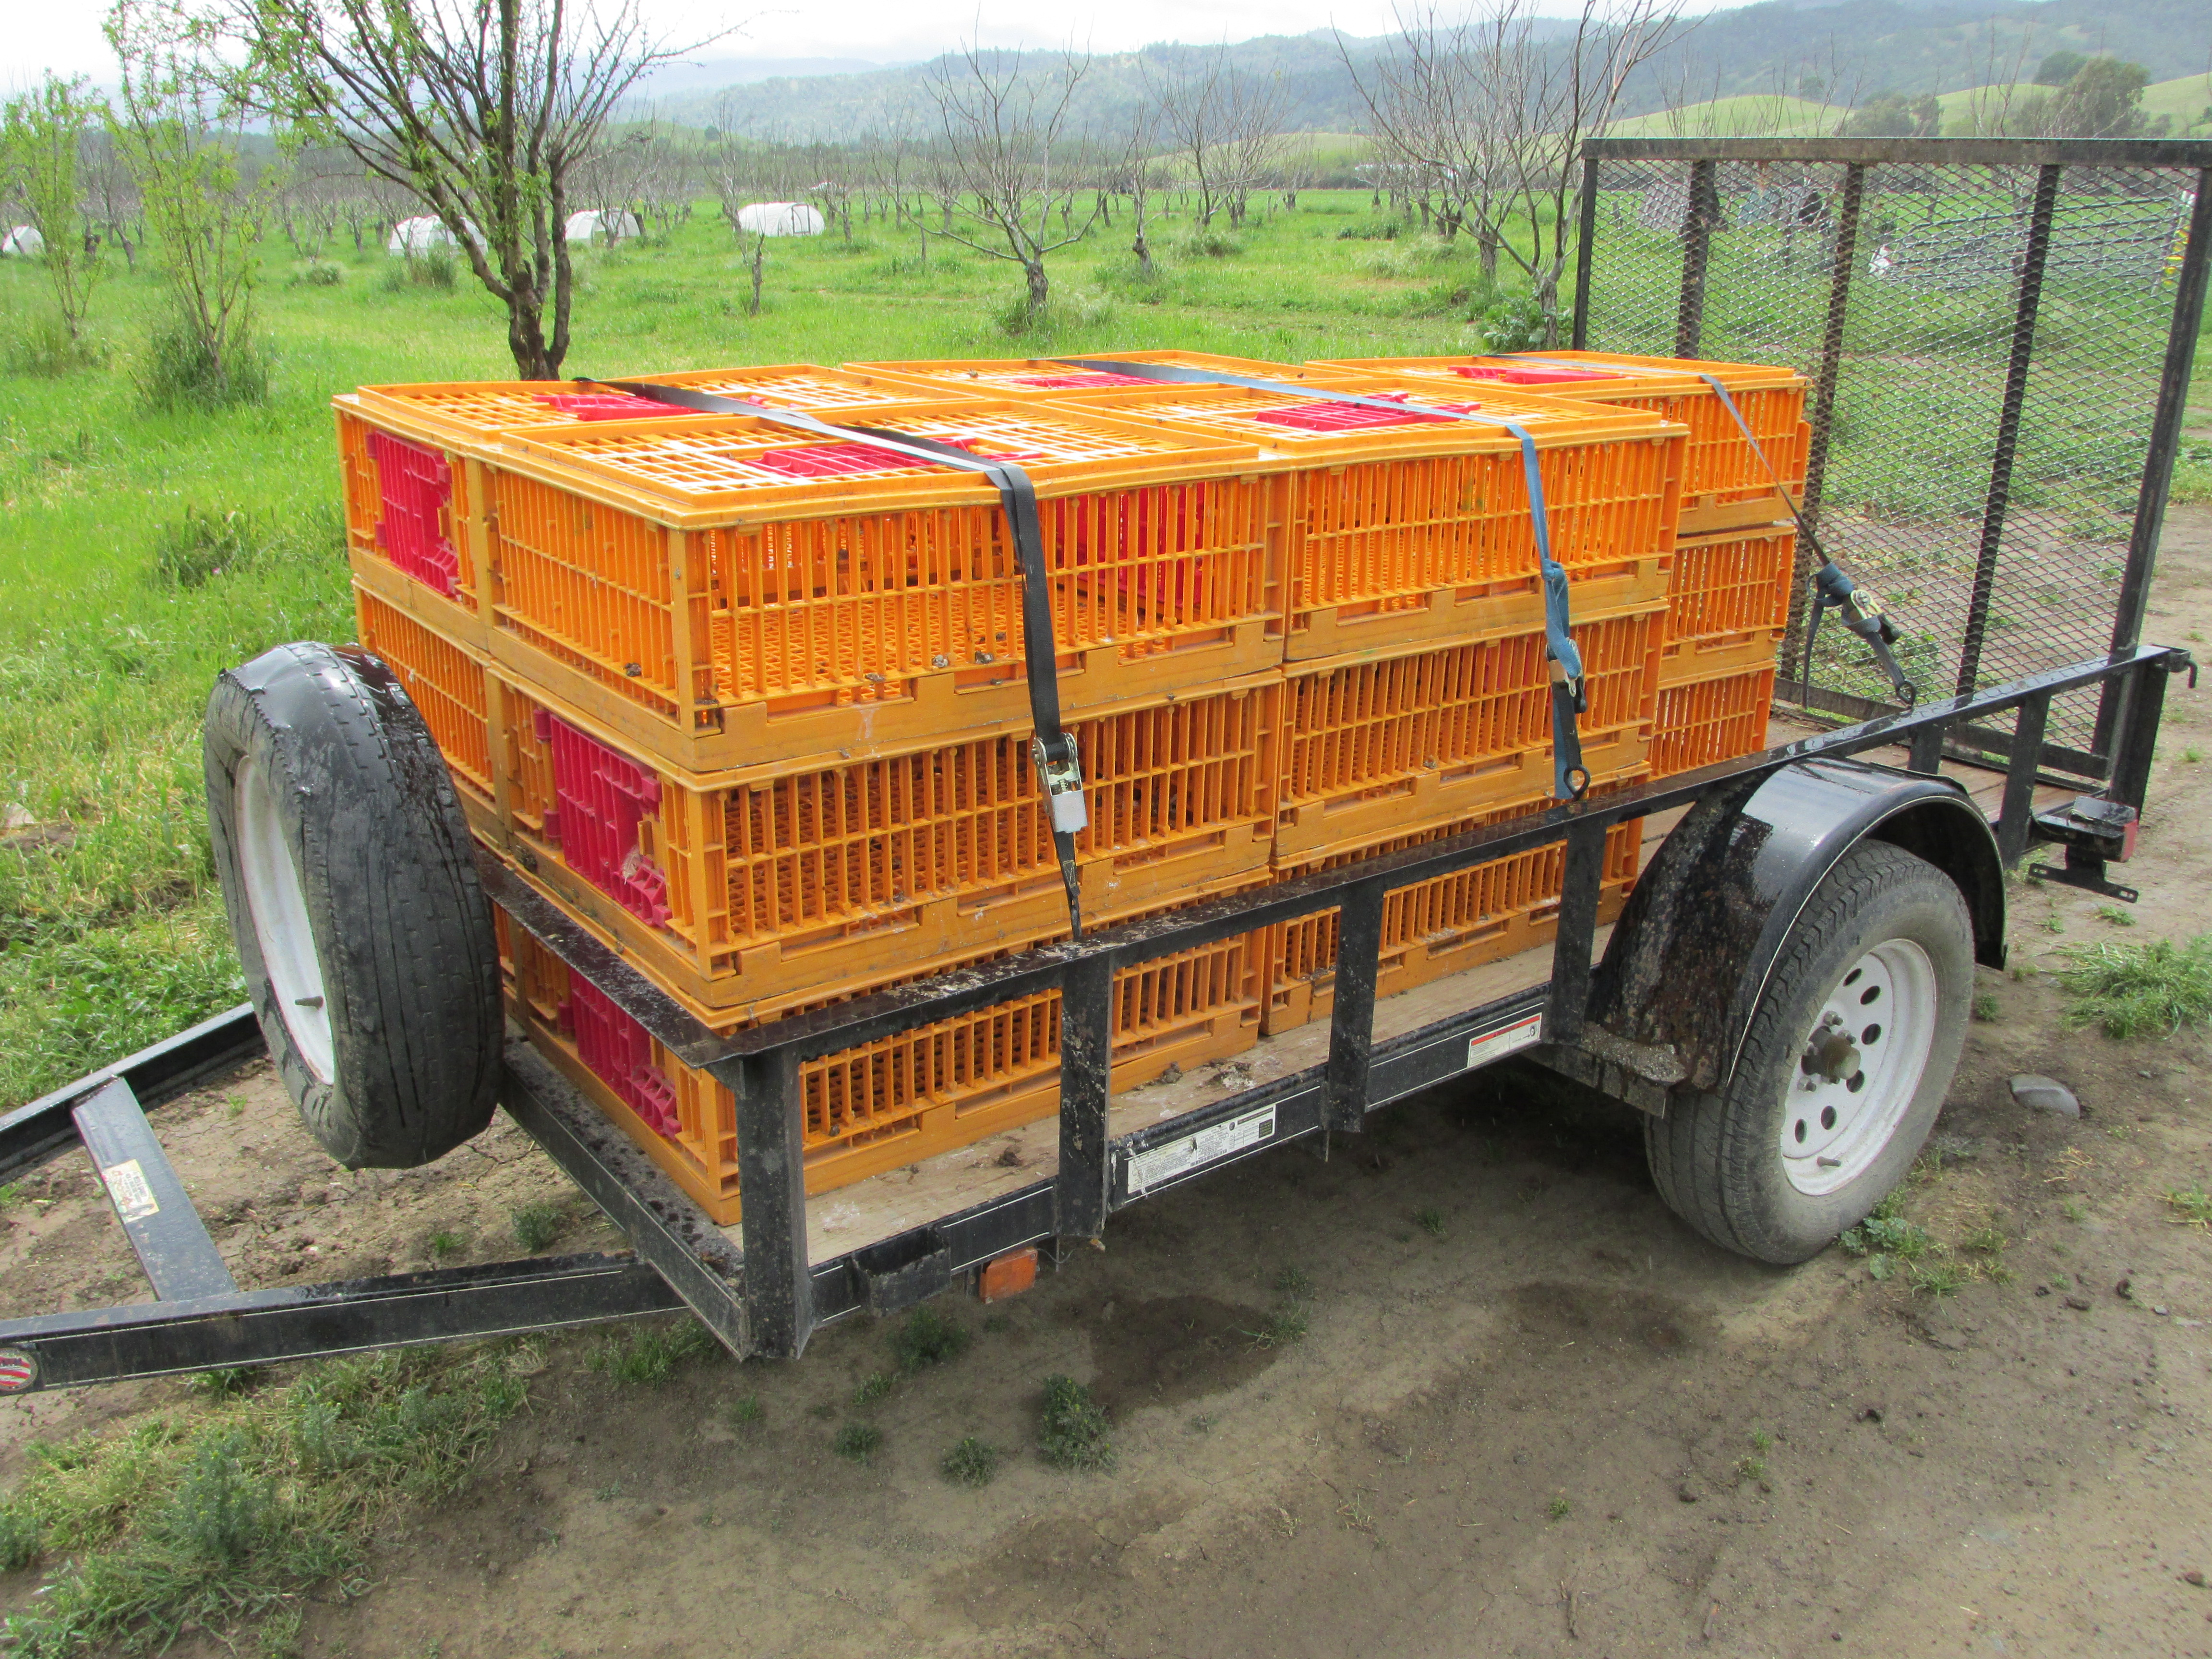 bird crates for transportation